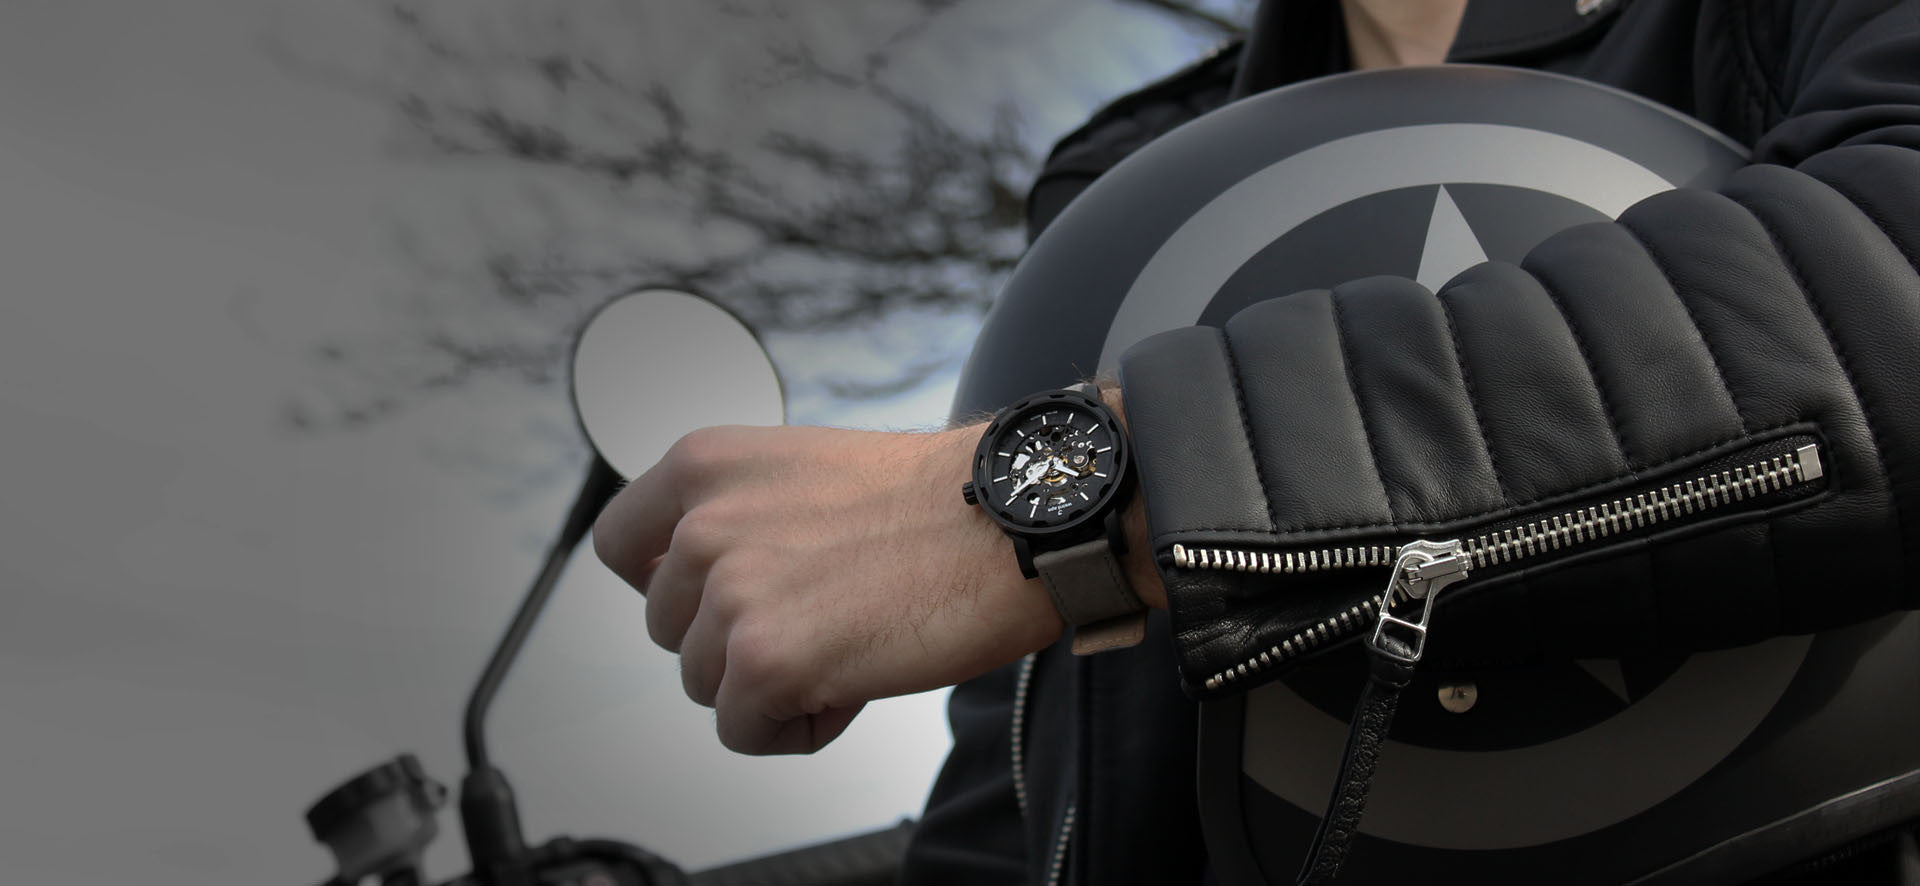 Black skeleton watch with a grey strap in a lifestyle image